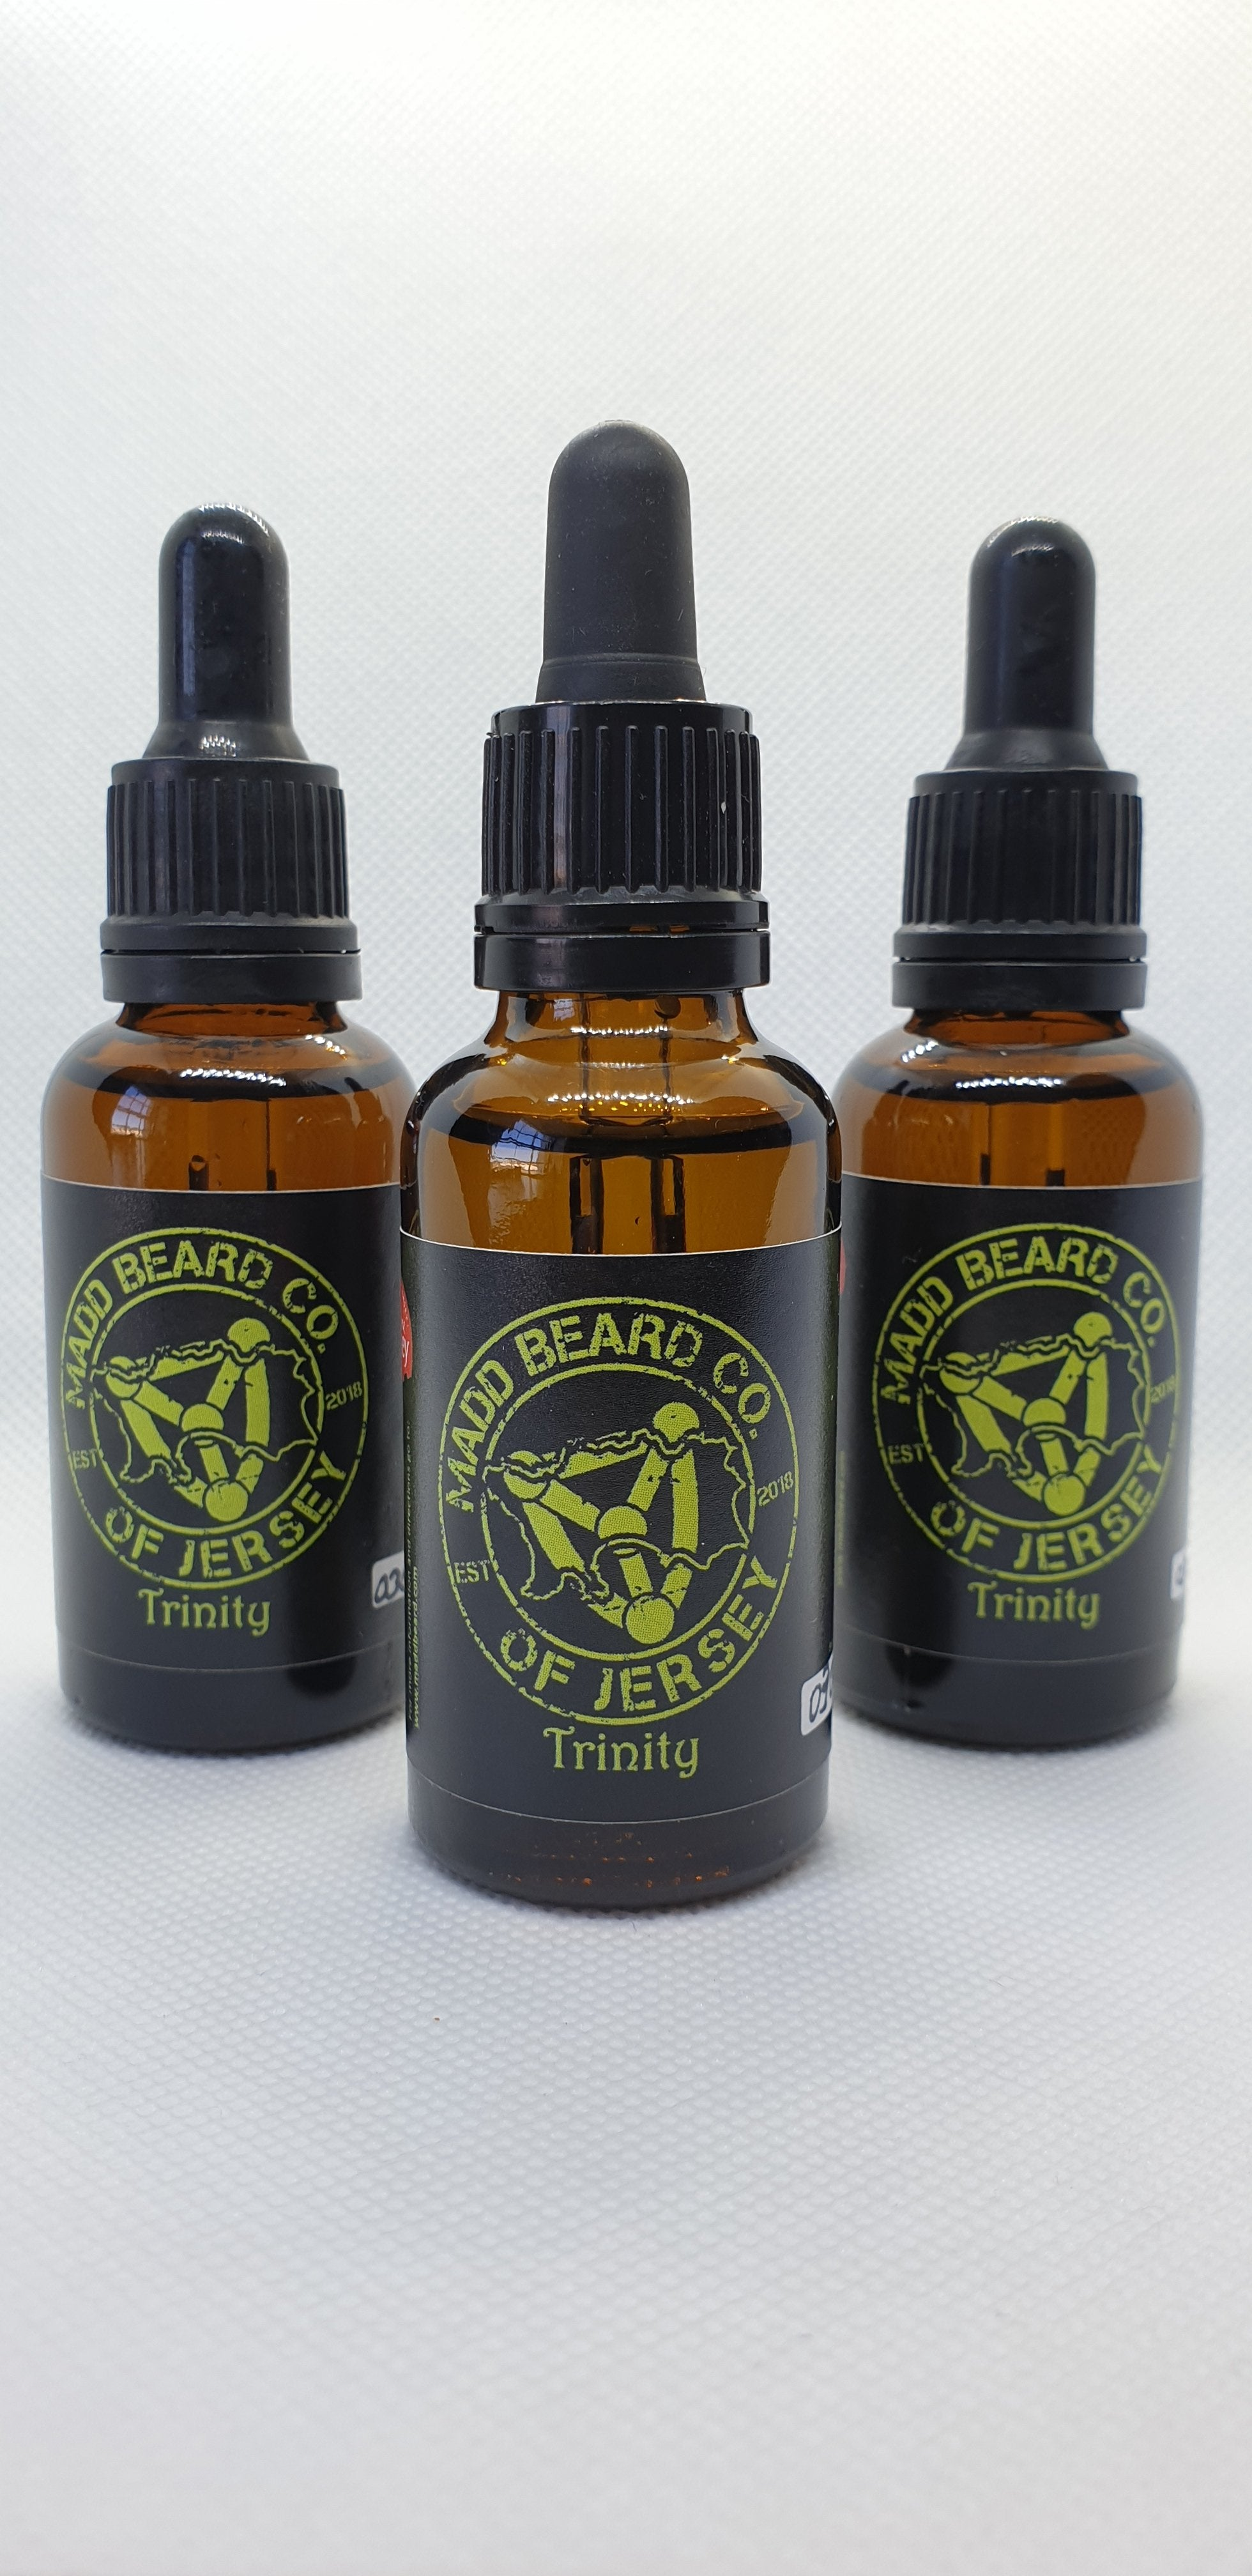 Trinity Beard Oil 30ml